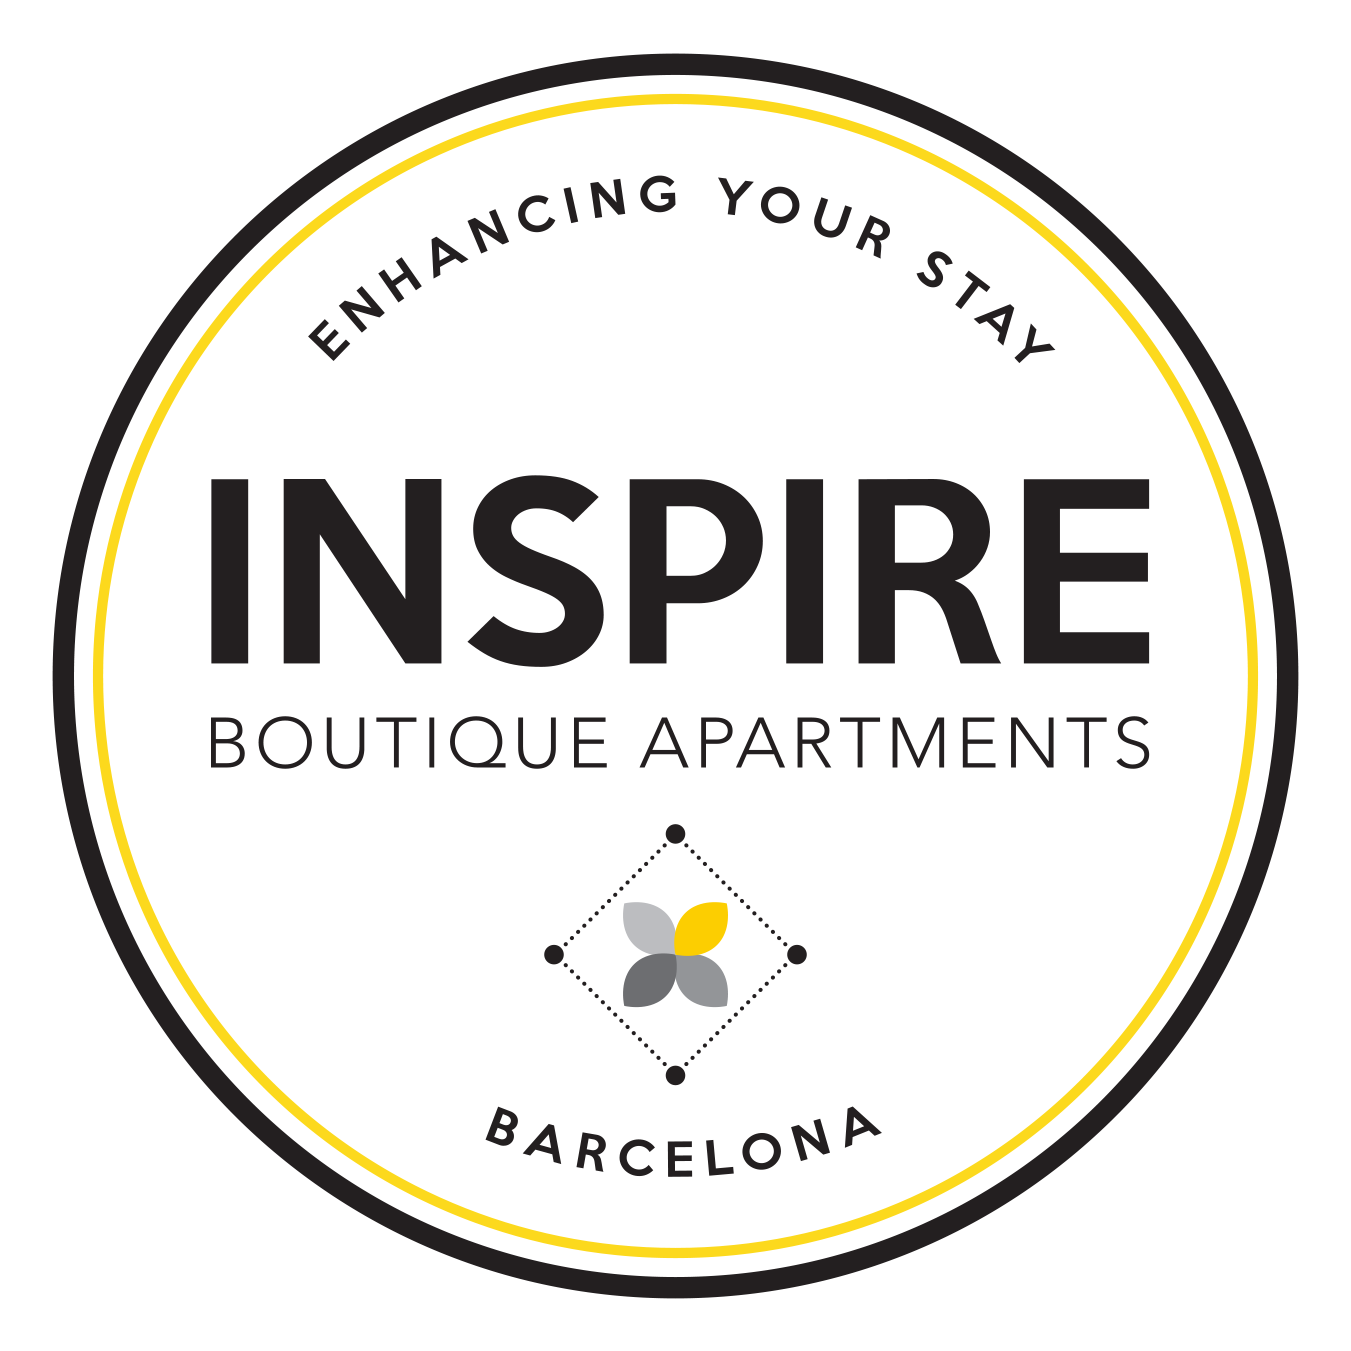 Inspire Boutique Apartments Barcelona • Purchase guidance, Real estate agent